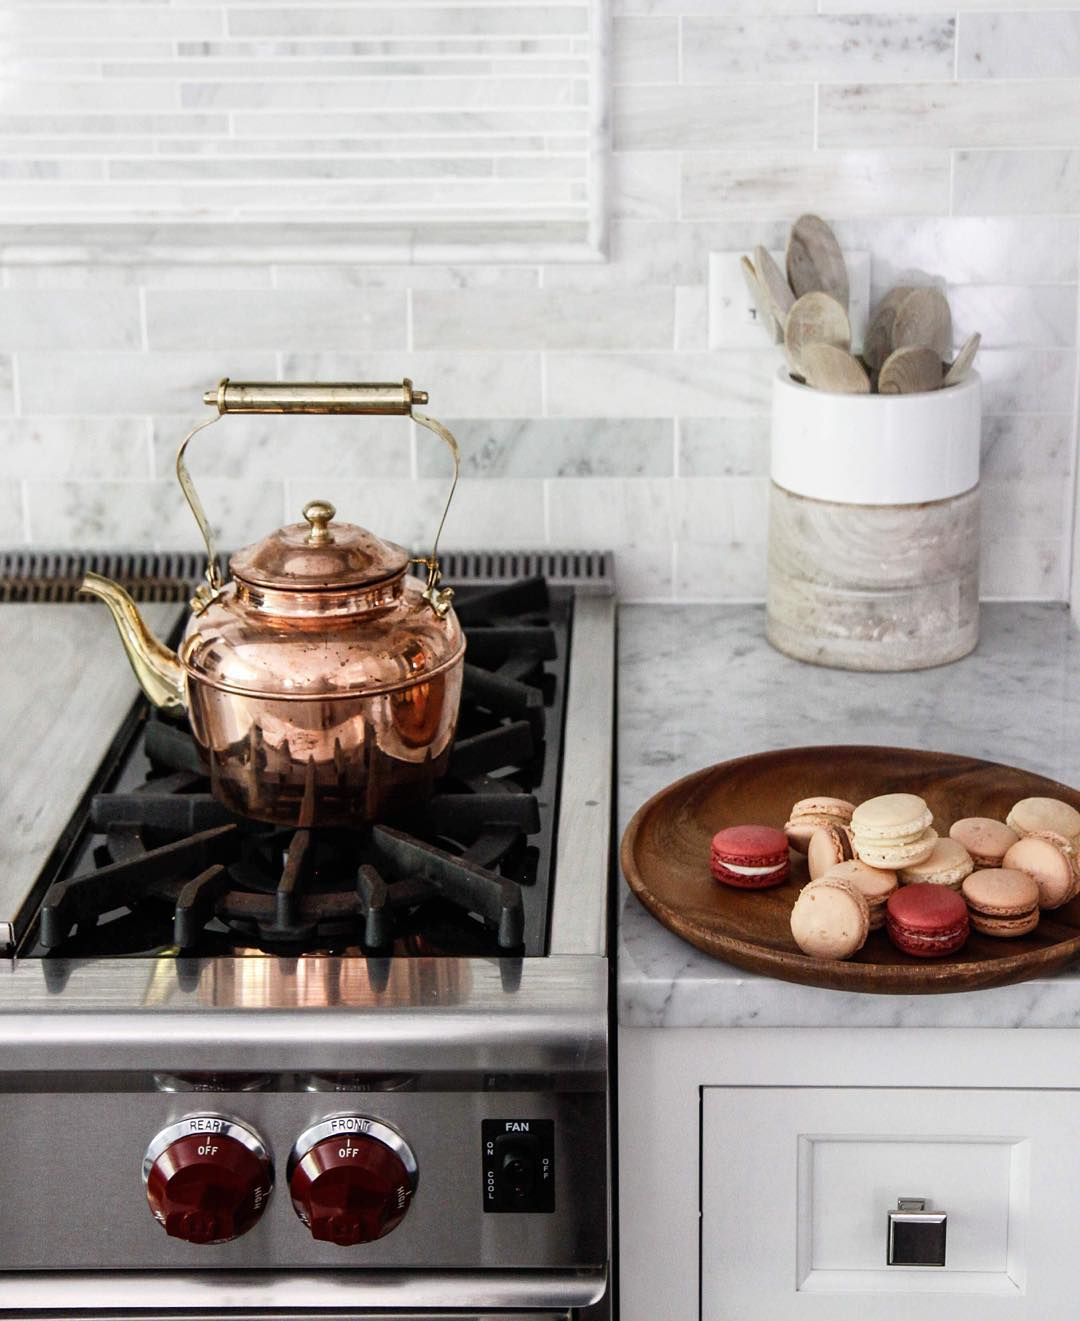 marble counter and backsplash via @citysage